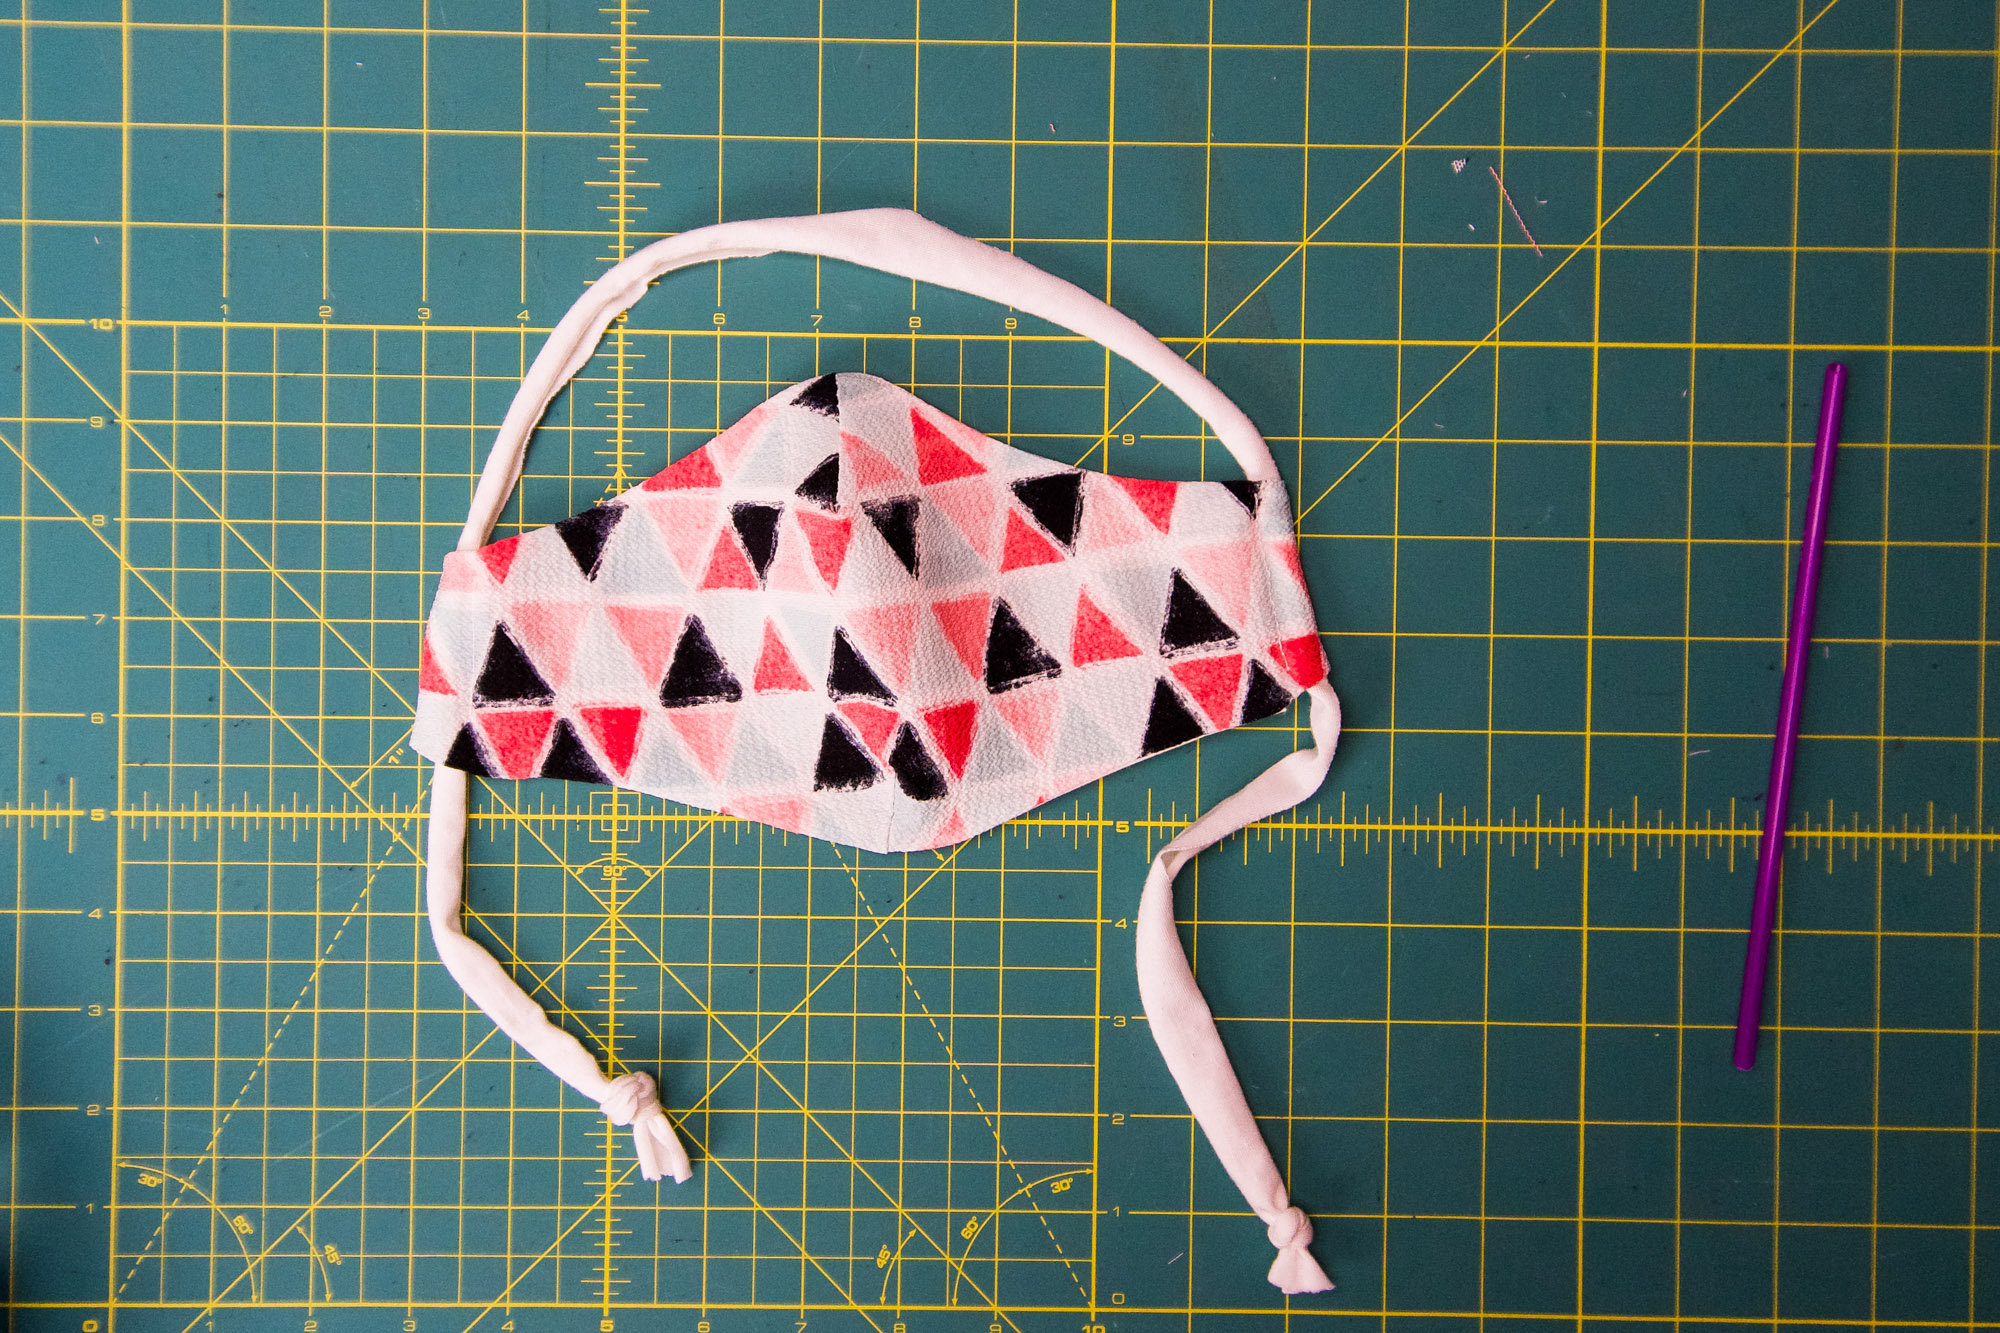 Finished mask on a cutting mat.